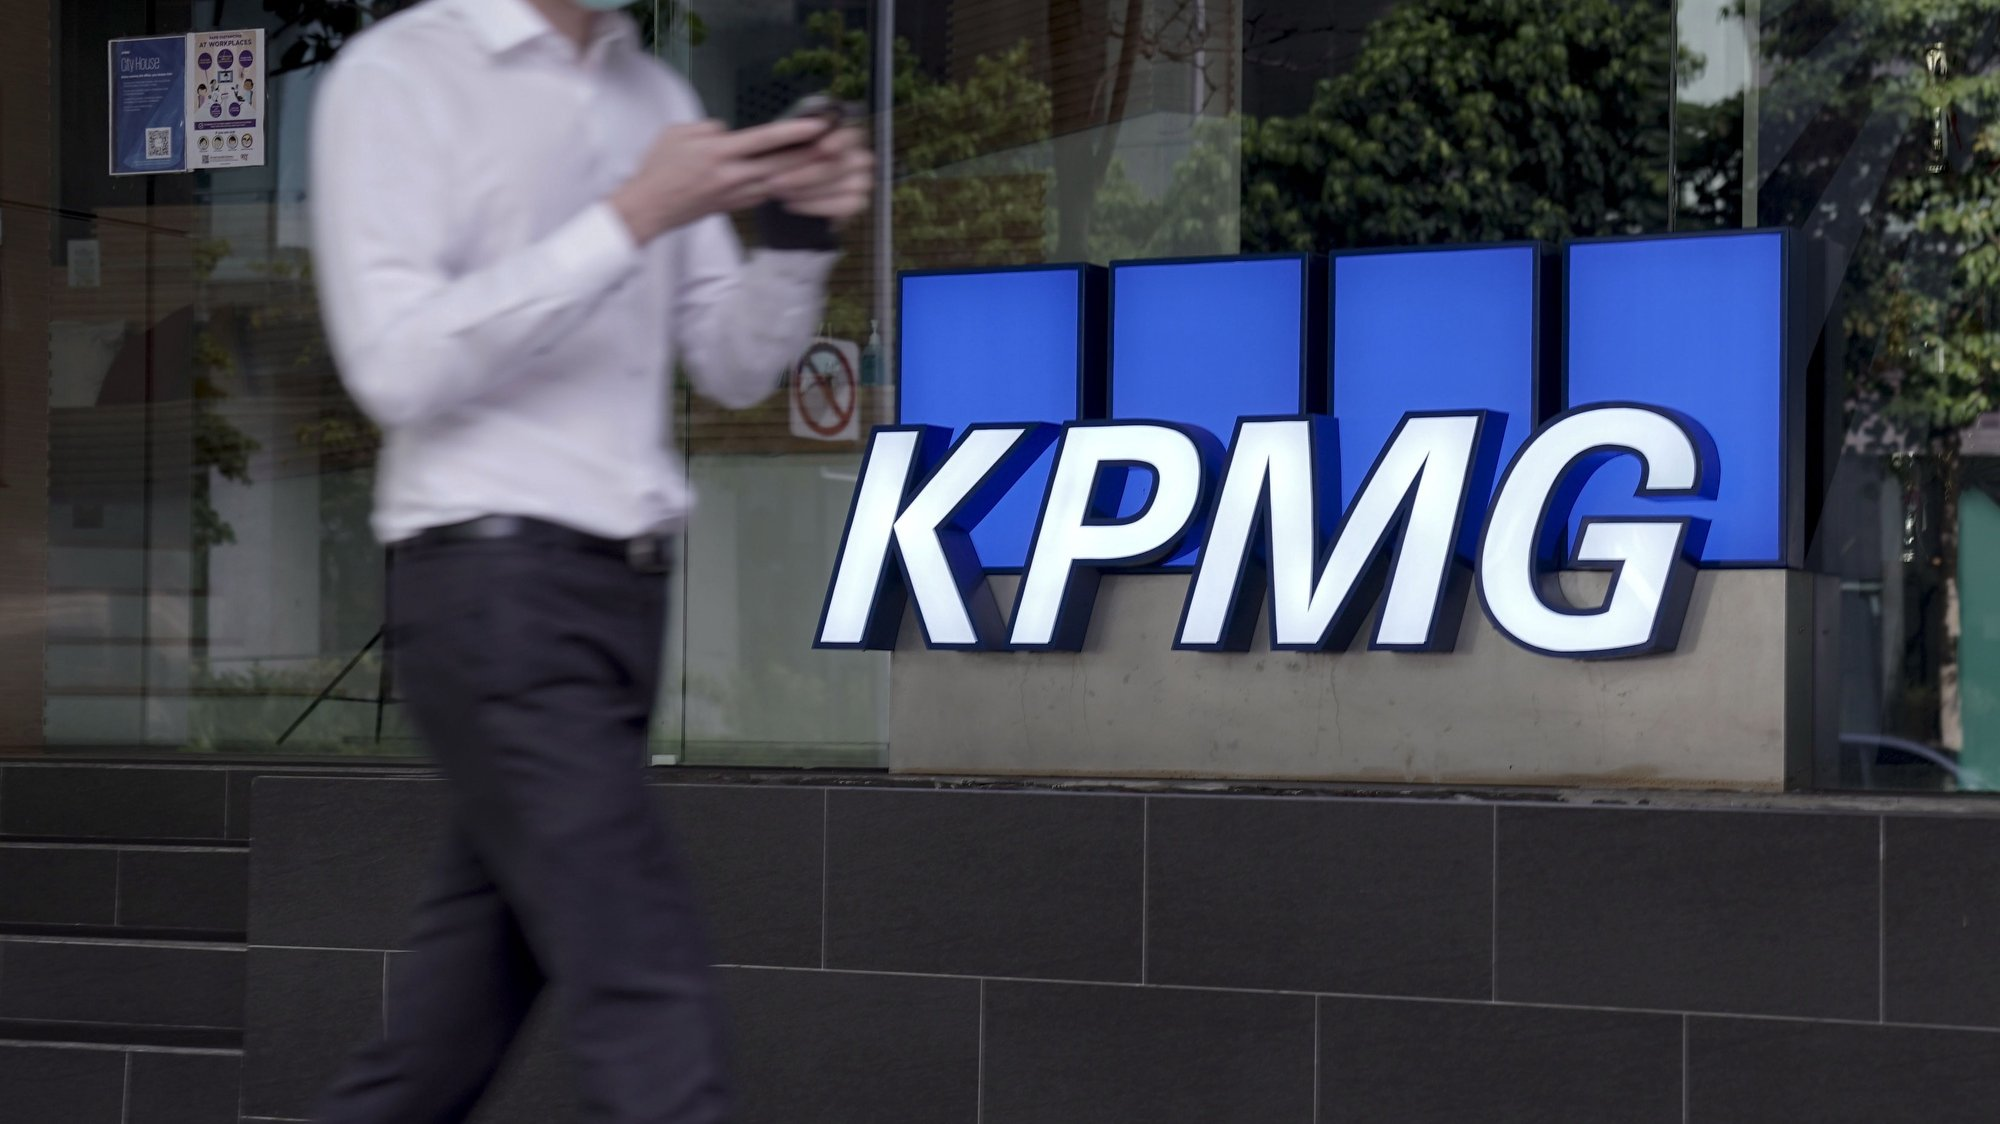 epa08777182 A man walks past the logo of auditing firm KPMG in the financial district in Singapore, 27 October 2020. The fallout of the global Covid-19 coronavirus pandemic has had a range of effects across workers from different sectors of the economy. As businesses gradually open up, economists are describing a 'K-shaped' recovery caused by lower wage workers affected by health and safety regulations, while white collar workers remain largely unaffected due to the advent of telecommuting and work from home arrangements.  EPA/WALLACE WOON